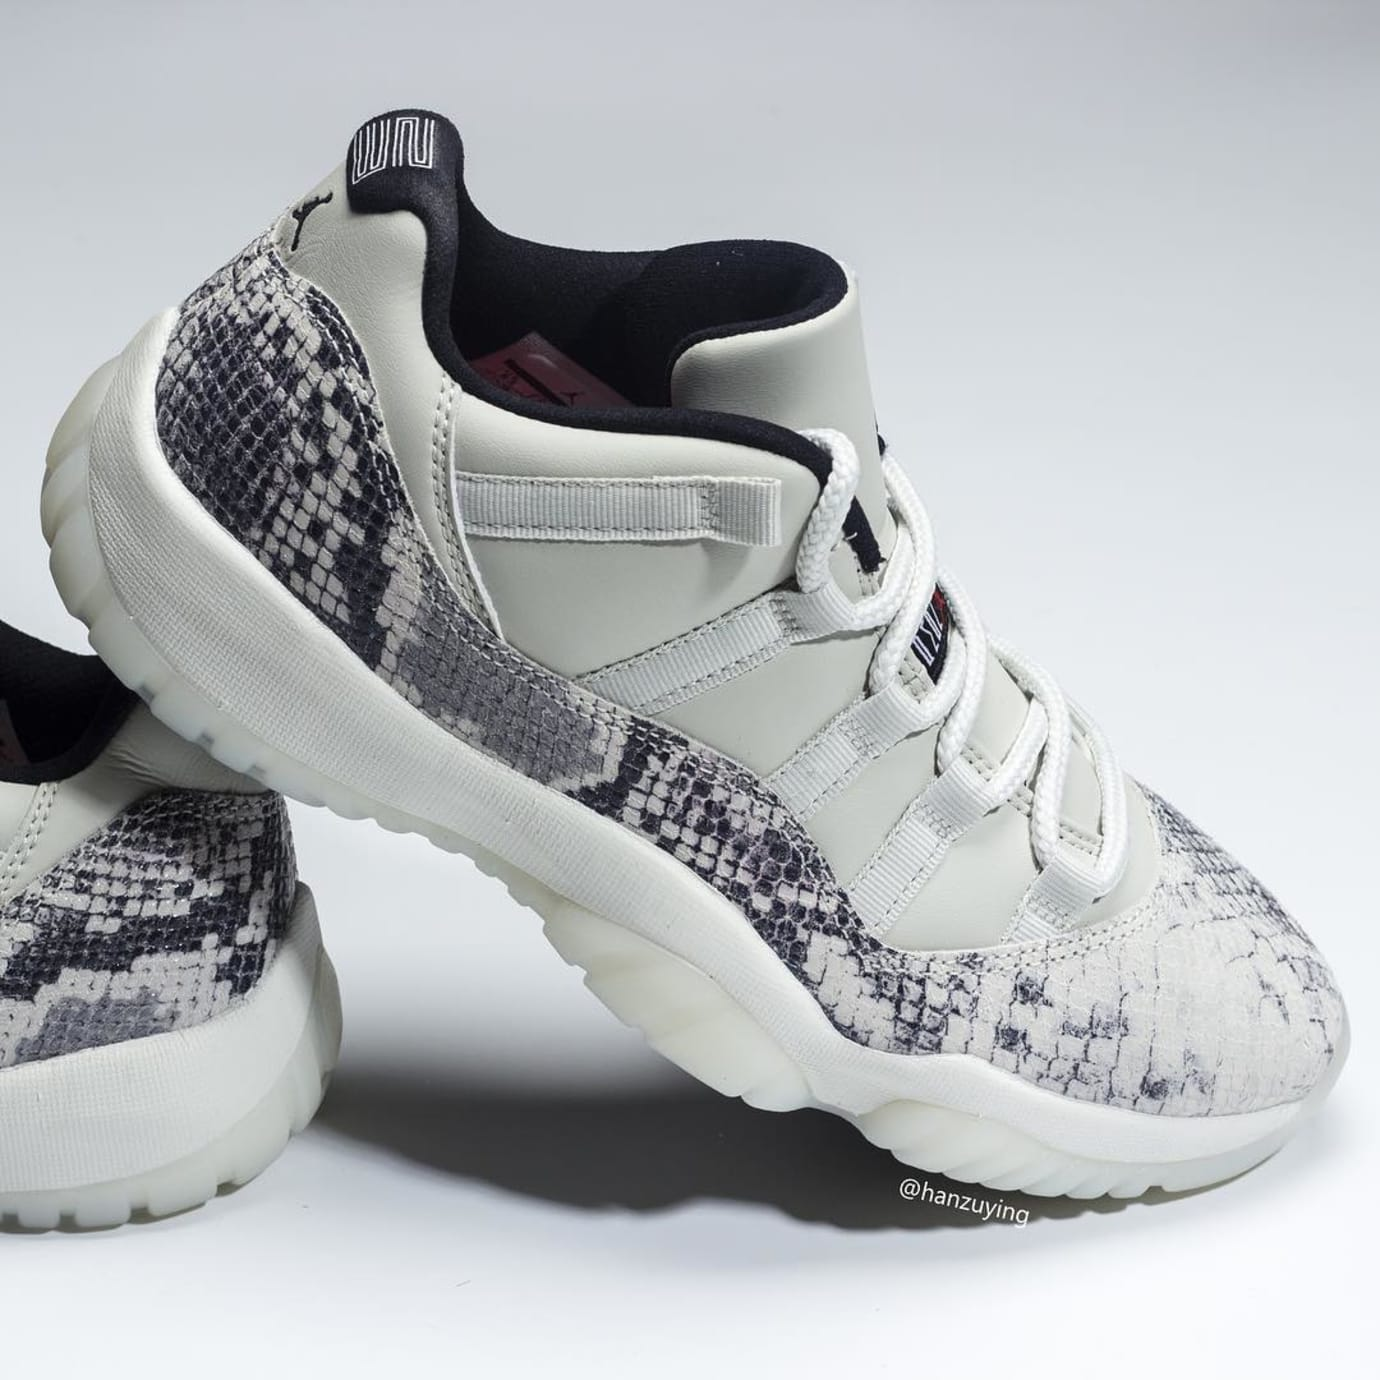 premium selection c759d bbbd6 Image via hanzuying · Air Jordan 11 Low SE Snakeskin  Light Bone University  Red-Sail-Black